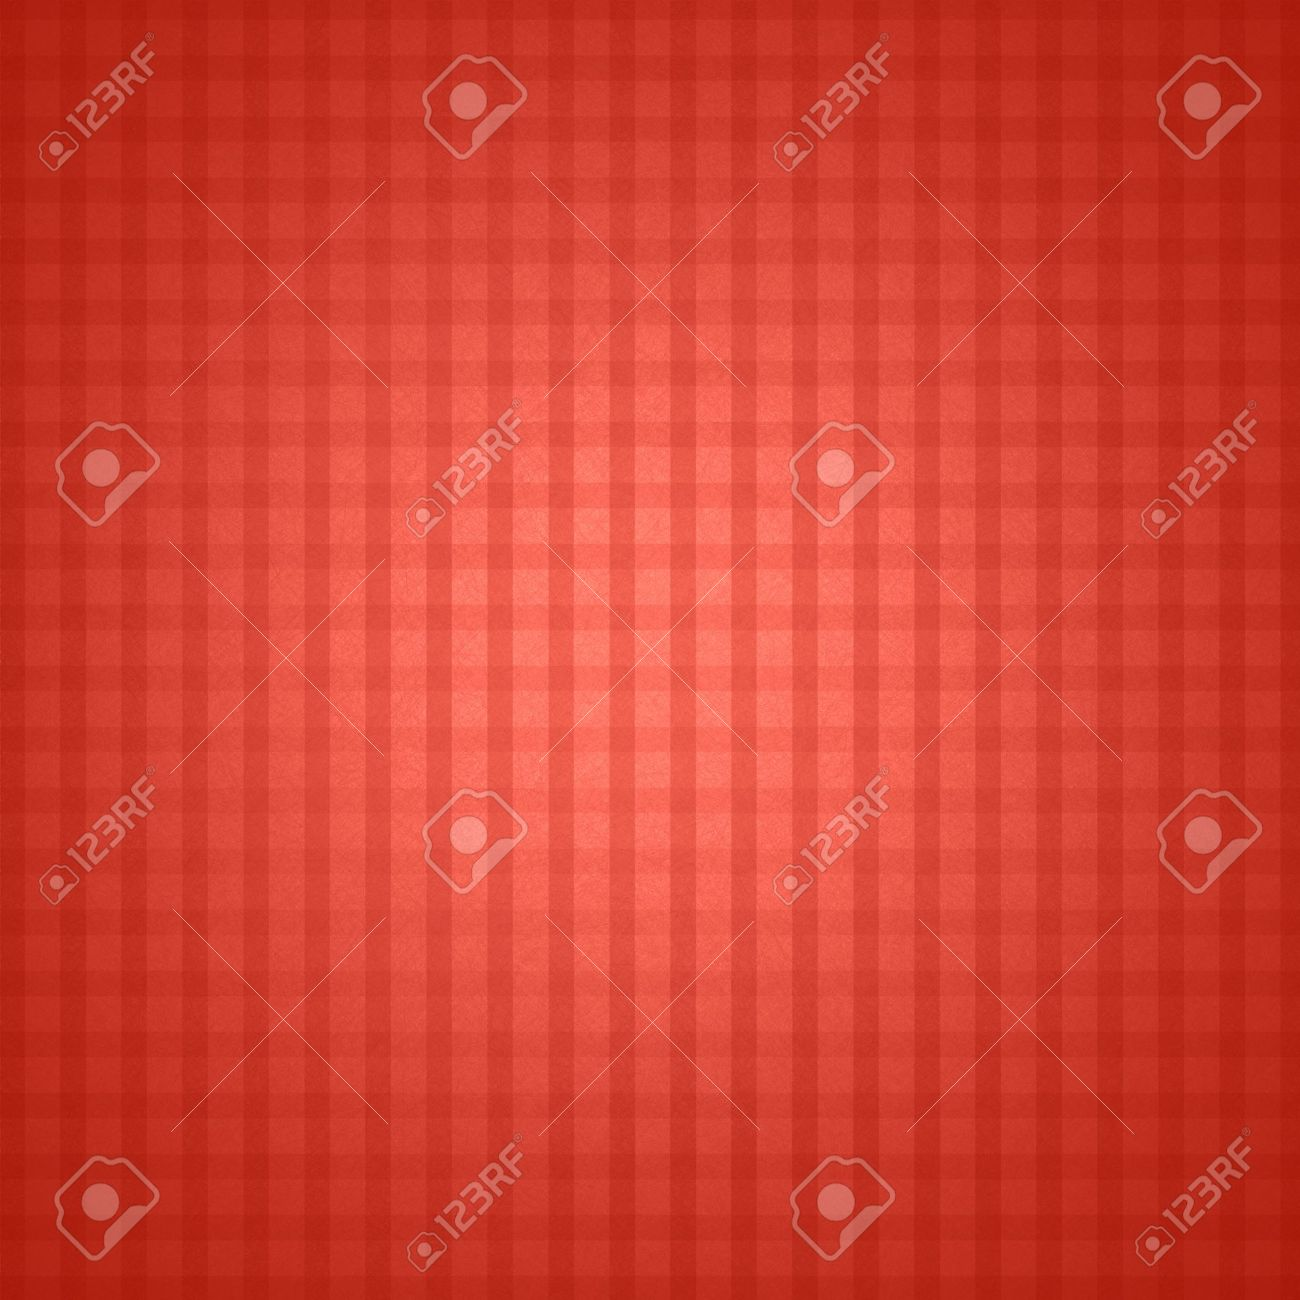 abstract pink background layout design, line elements or striped pattern background, warm red orange background paper, menu brochure, poster sale, or website template background, fun bright colors Stock Photo - 18174636